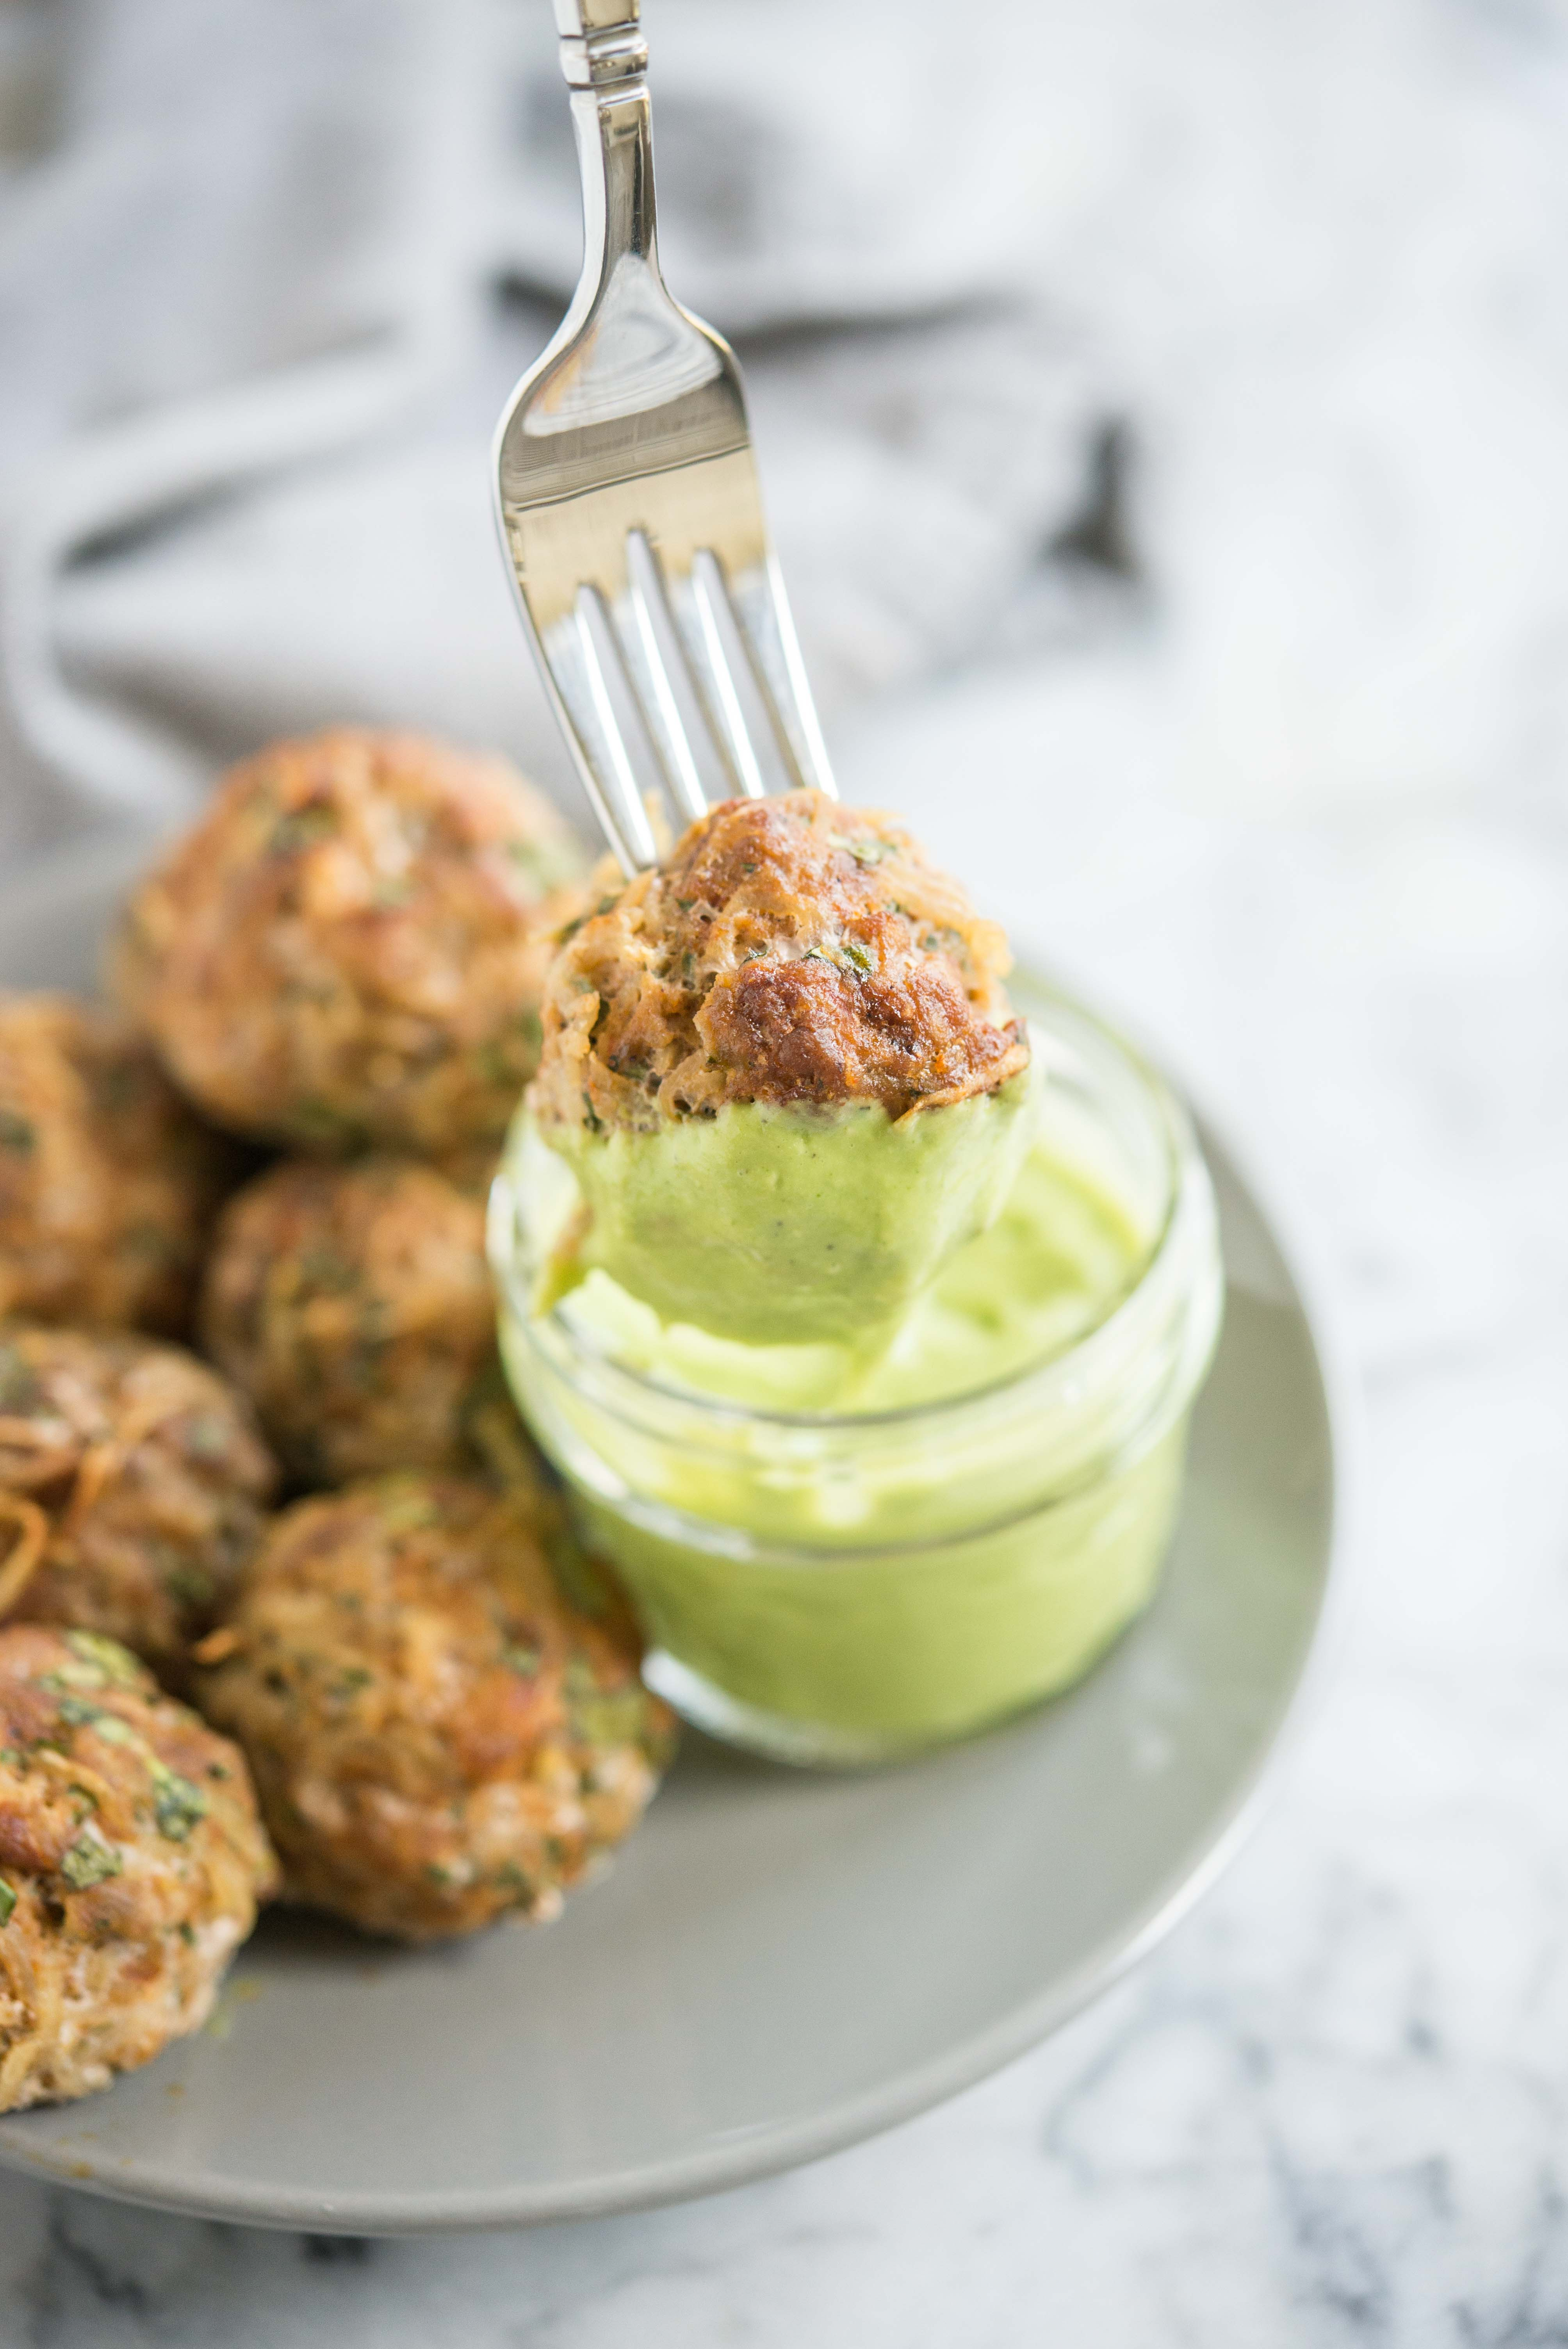 fork holding a chorizo potato breakfast meatball dipped in a bright green sauce